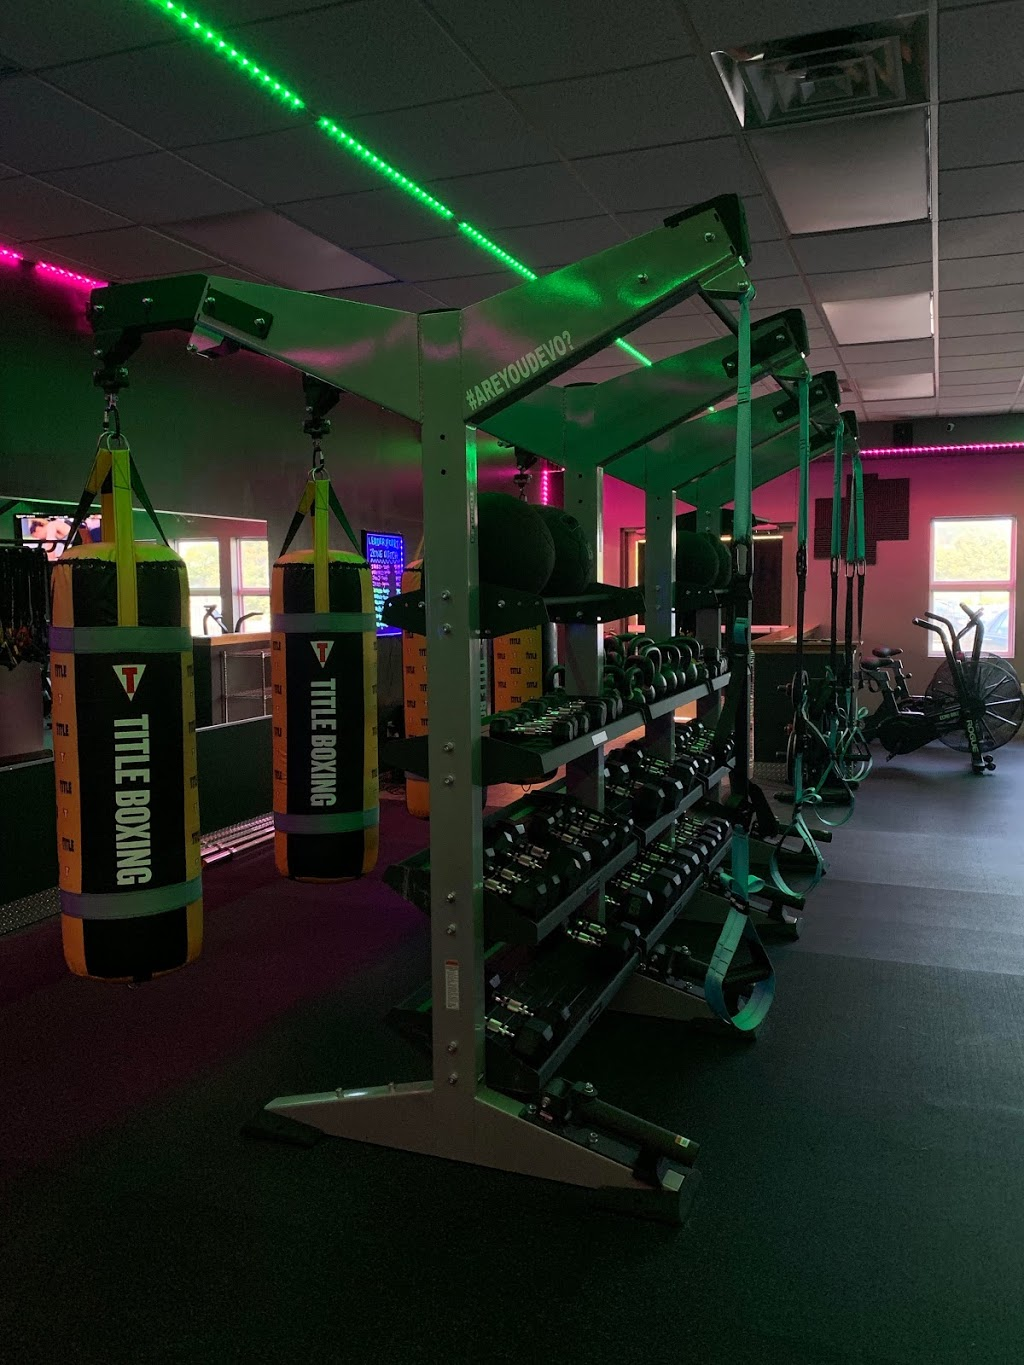 Devo Fitness - gym    Photo 3 of 8   Address: 455 99th Ave NW #170, Coon Rapids, MN 55433, USA   Phone: (763) 762-6914